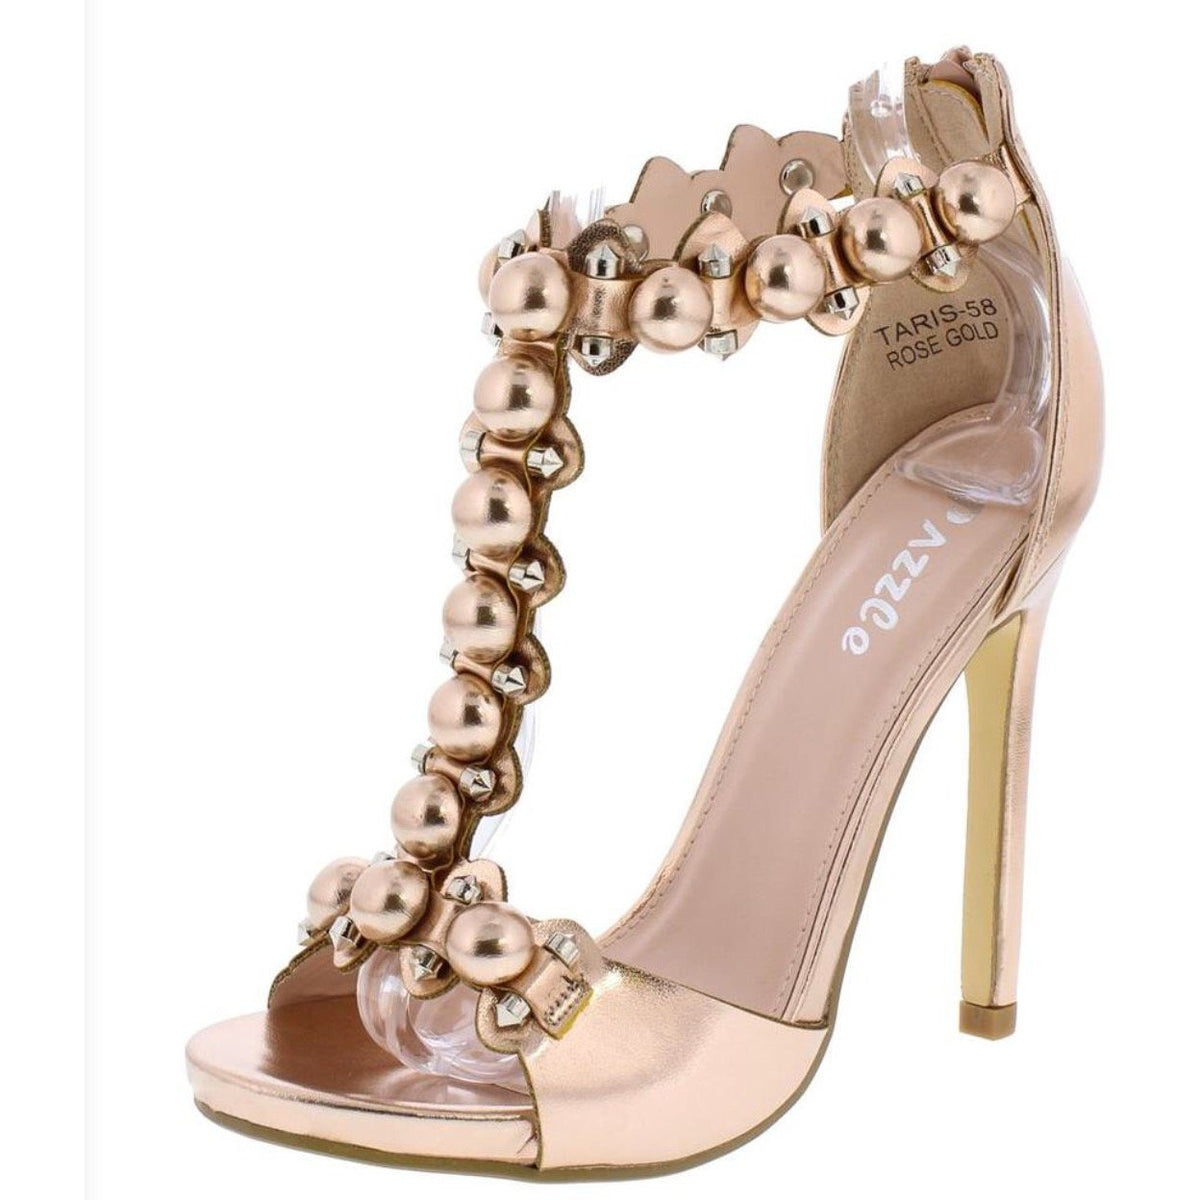 Kim Rose Gold Patent Leather Stiletto Shoes